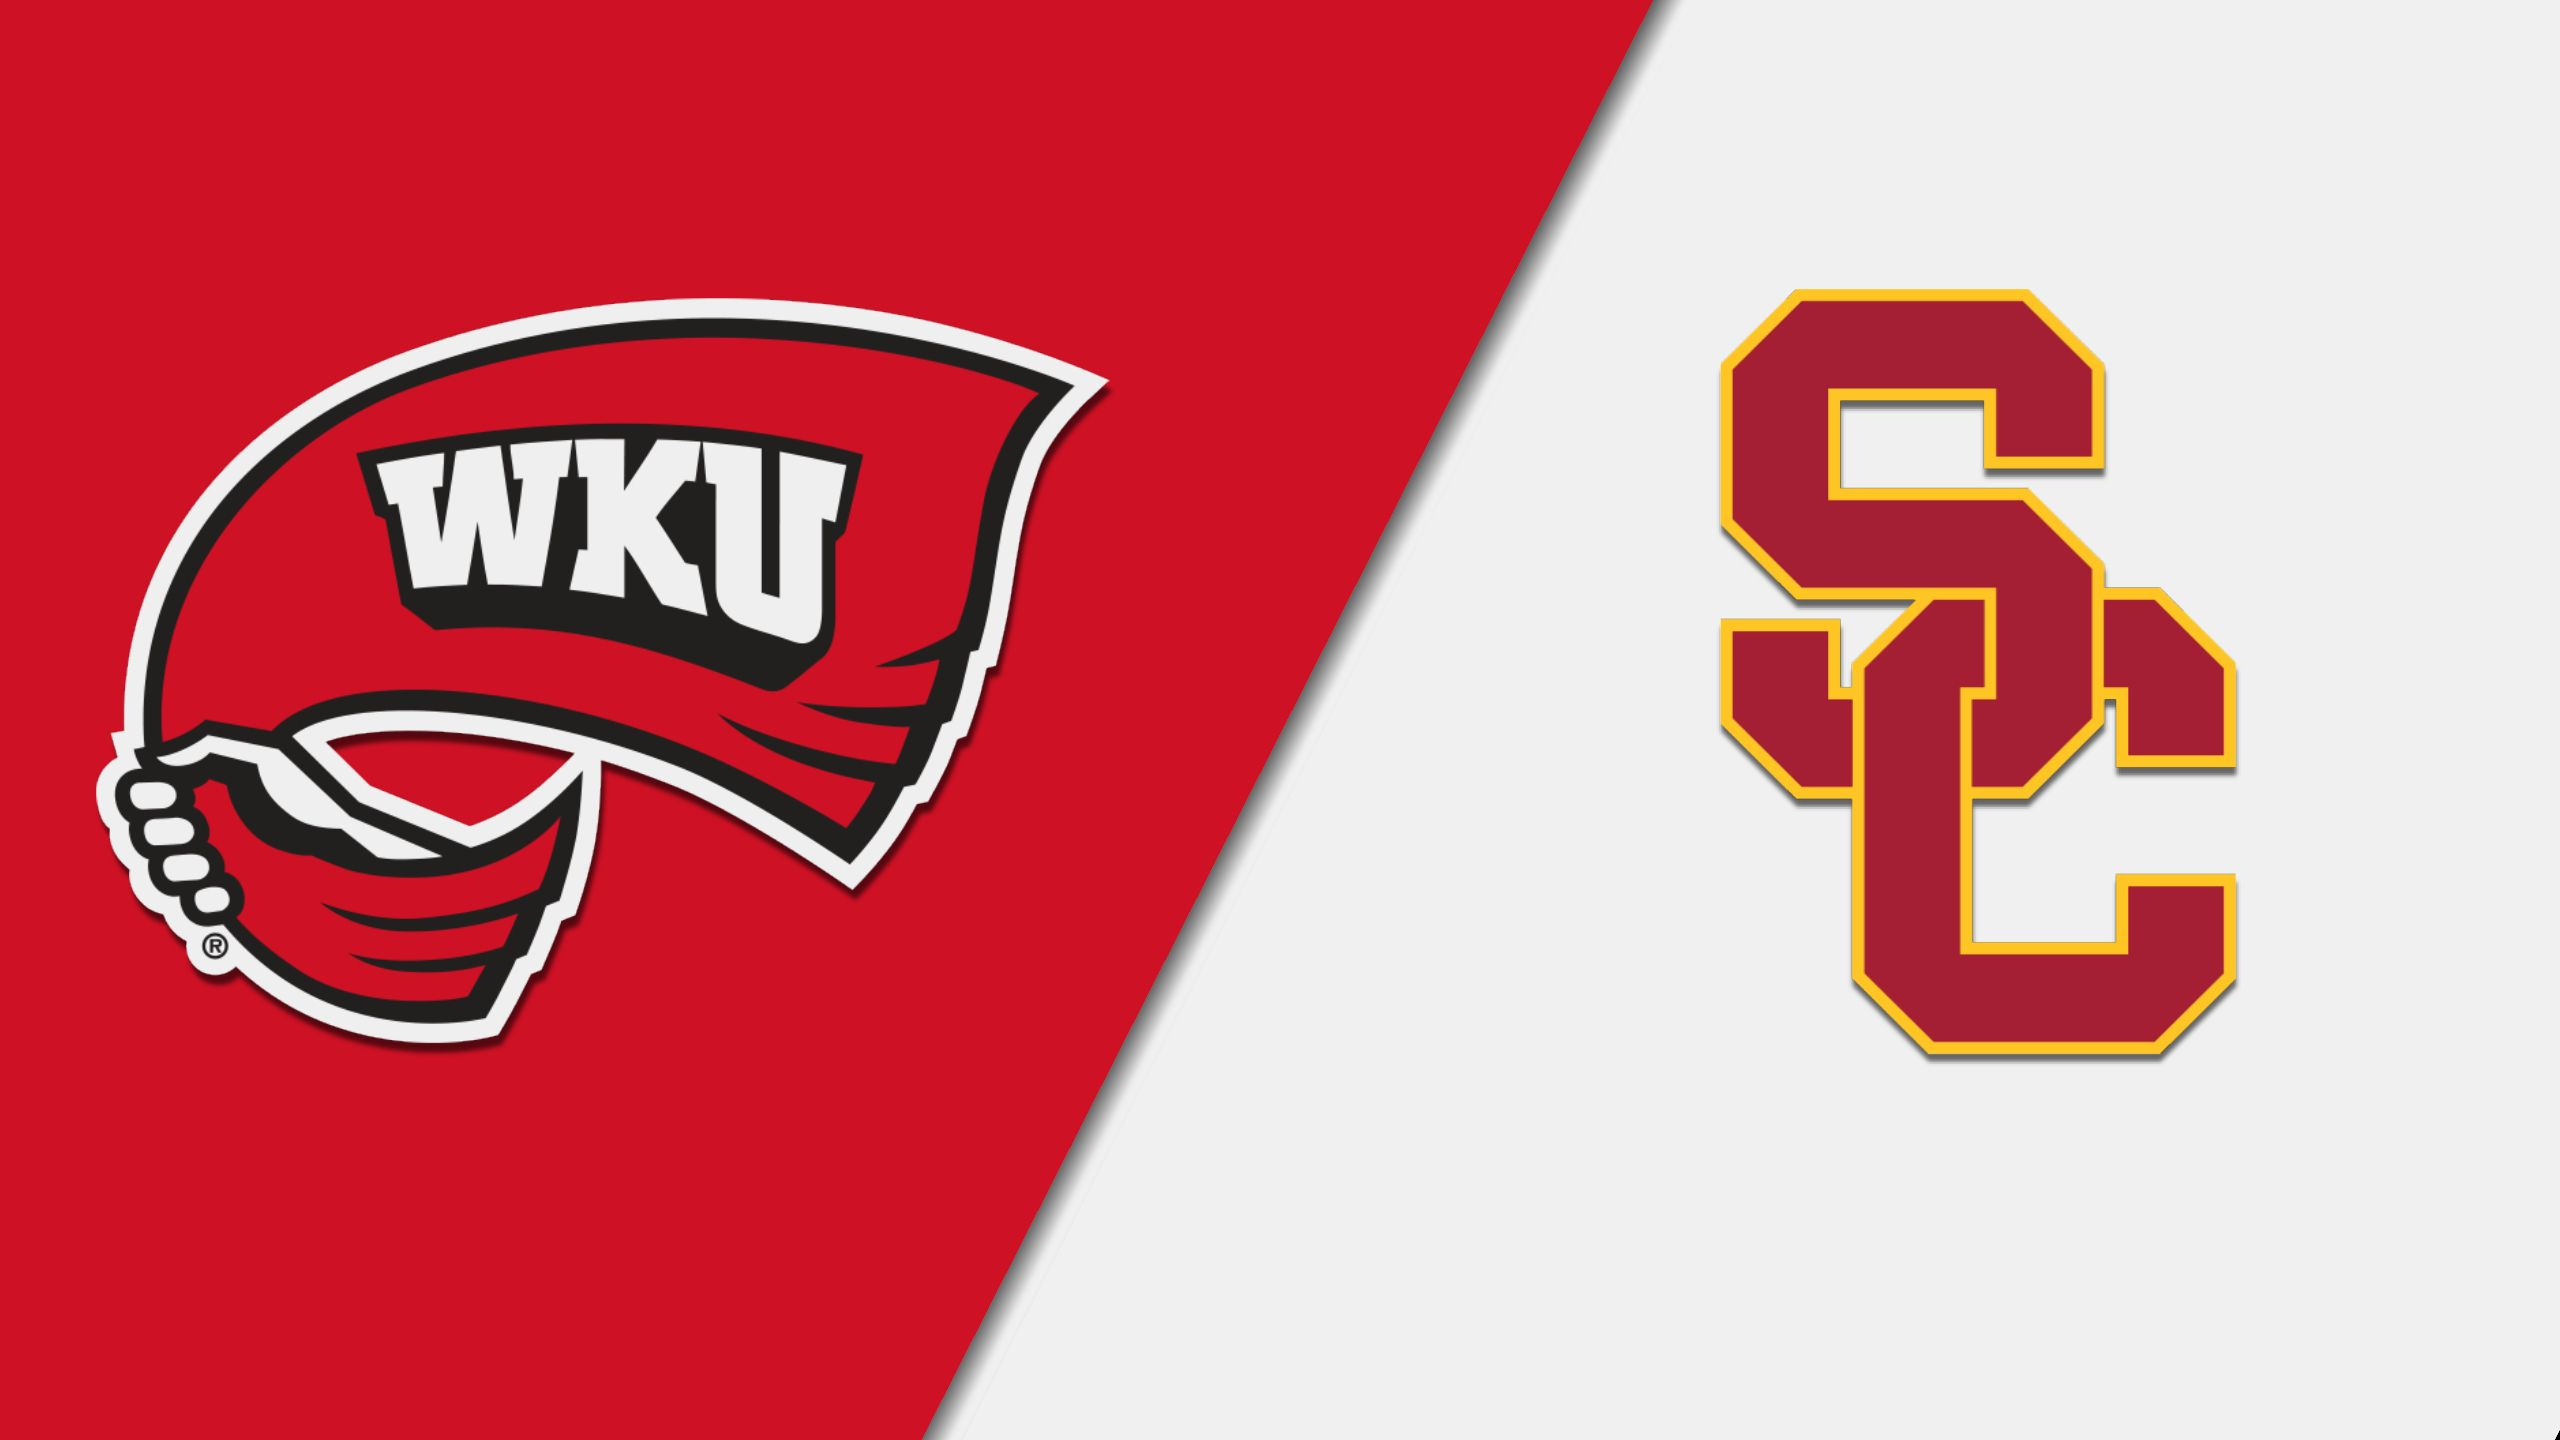 #4 Western Kentucky vs. #1 USC (Second Round) (NIT)